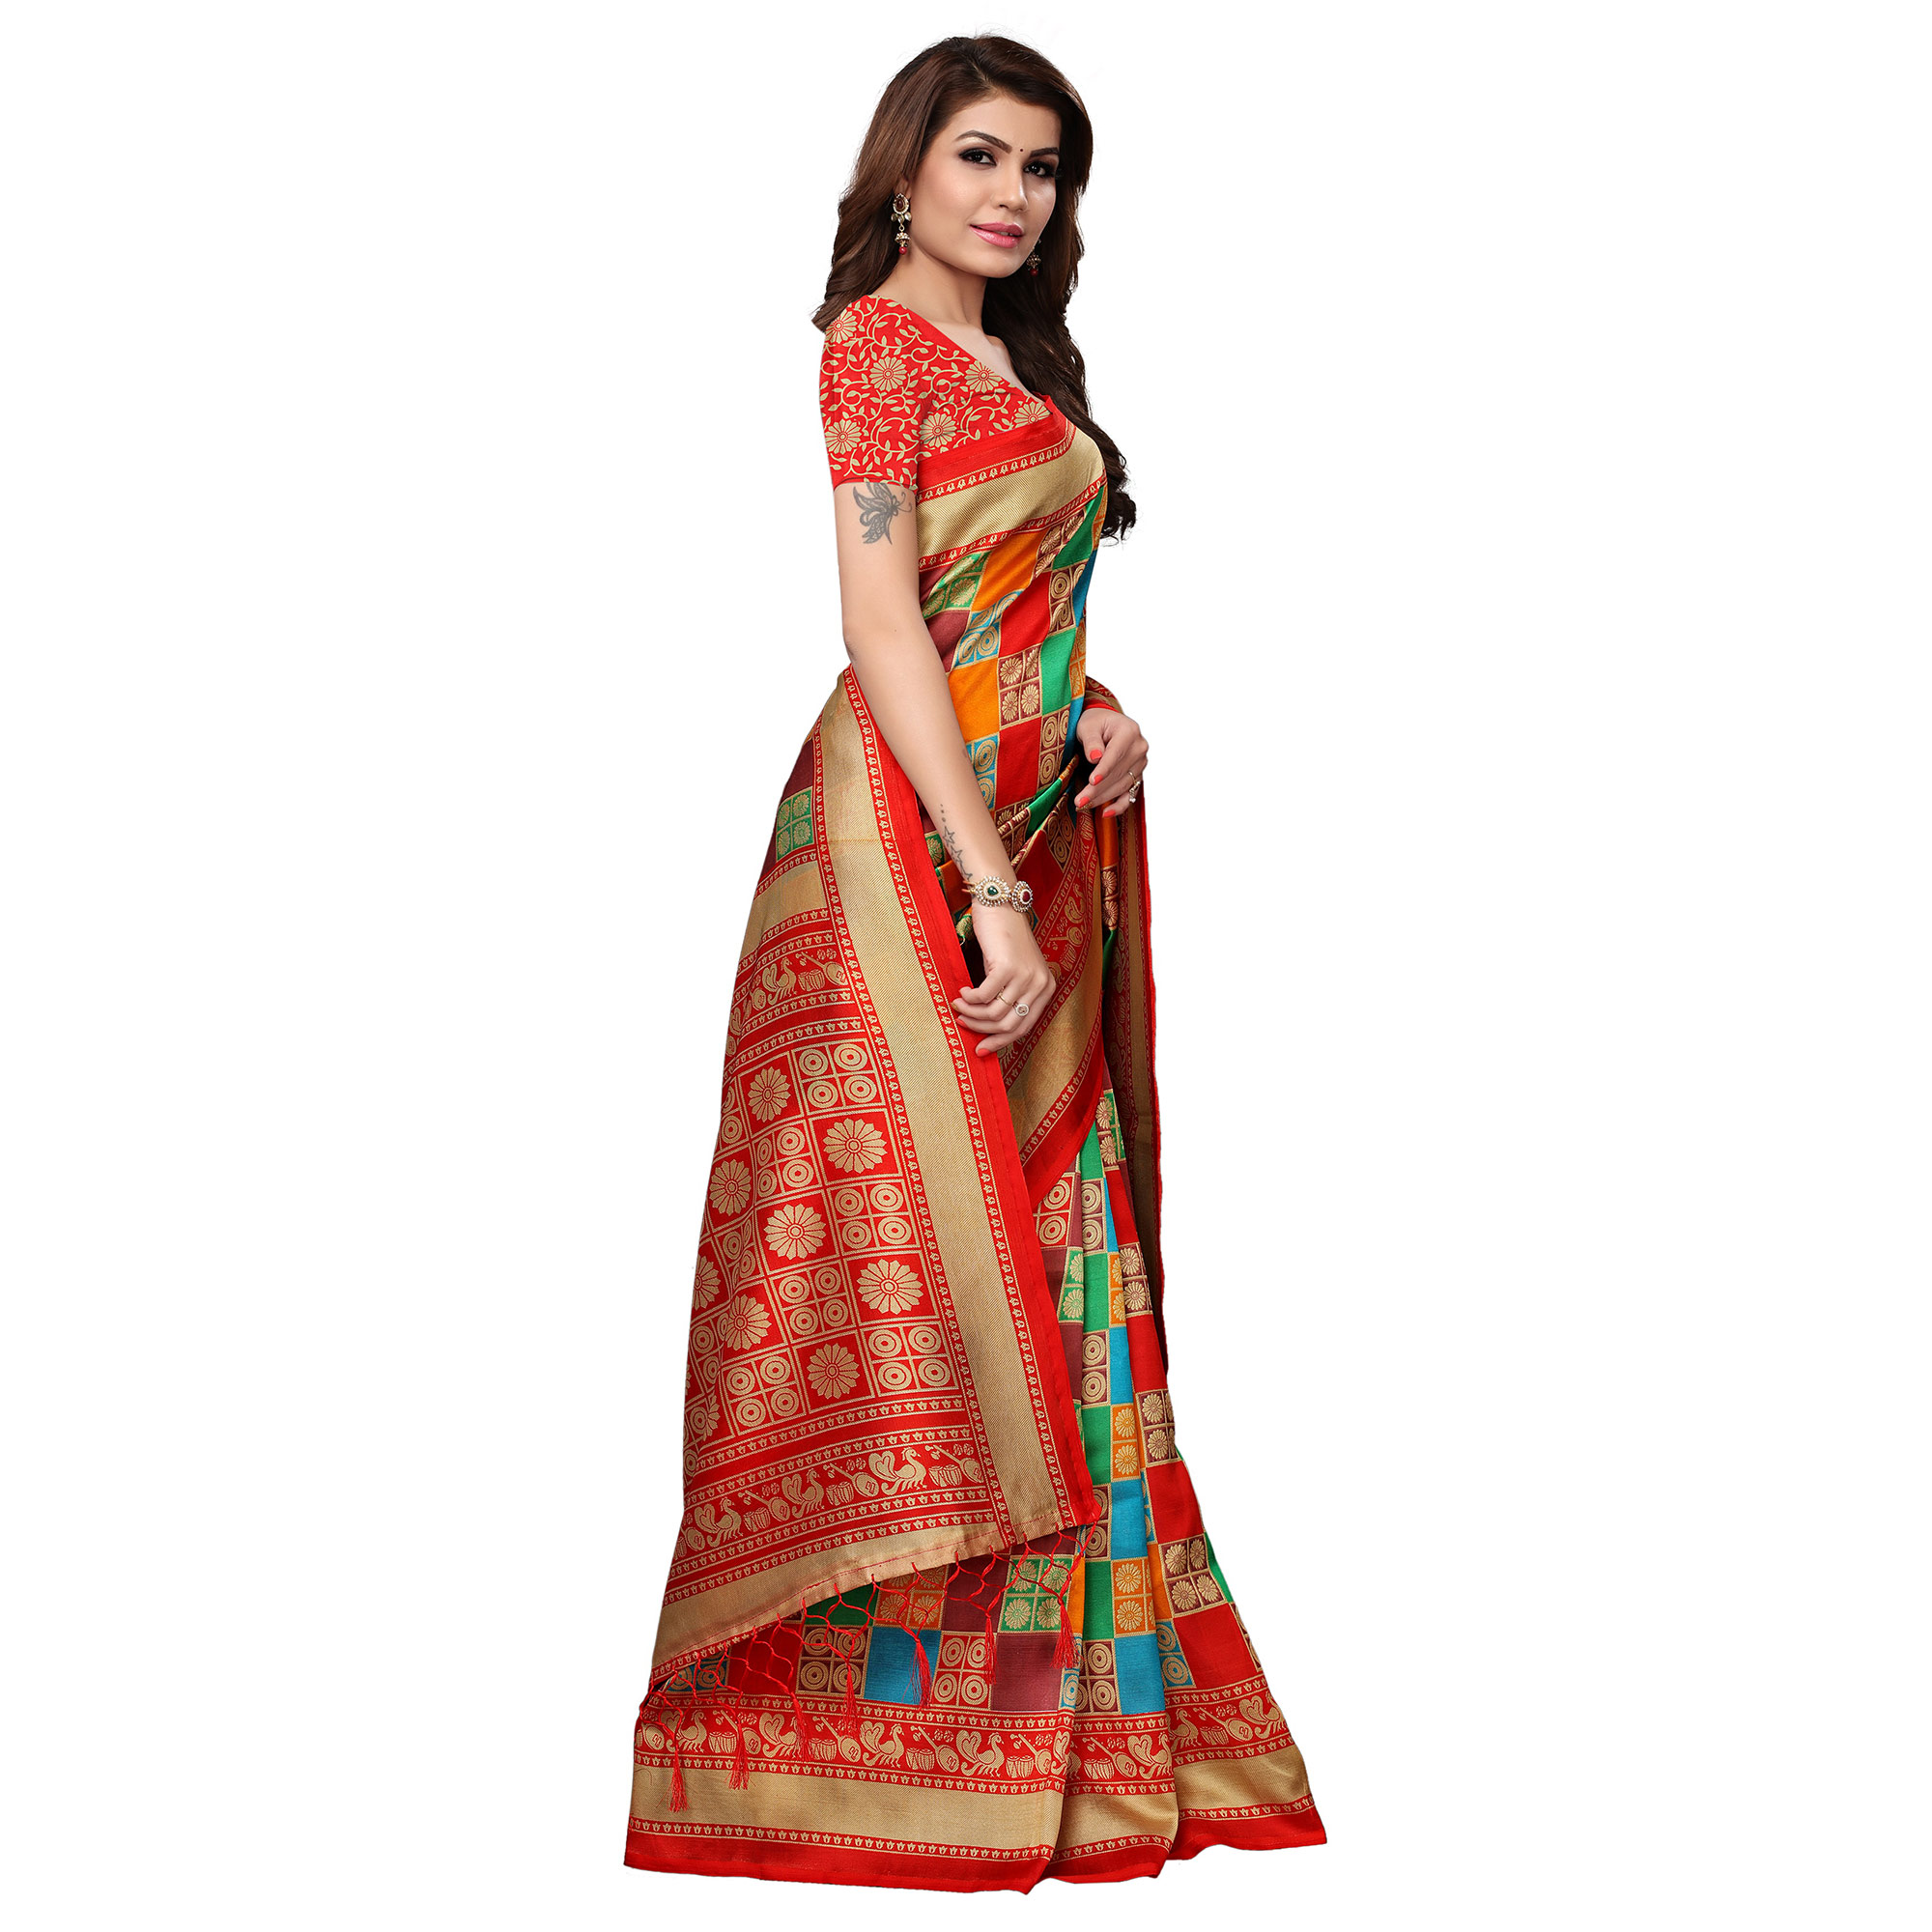 Hypnotic Multi - Red Colored Festive Wear Printed Mysore Silk Saree